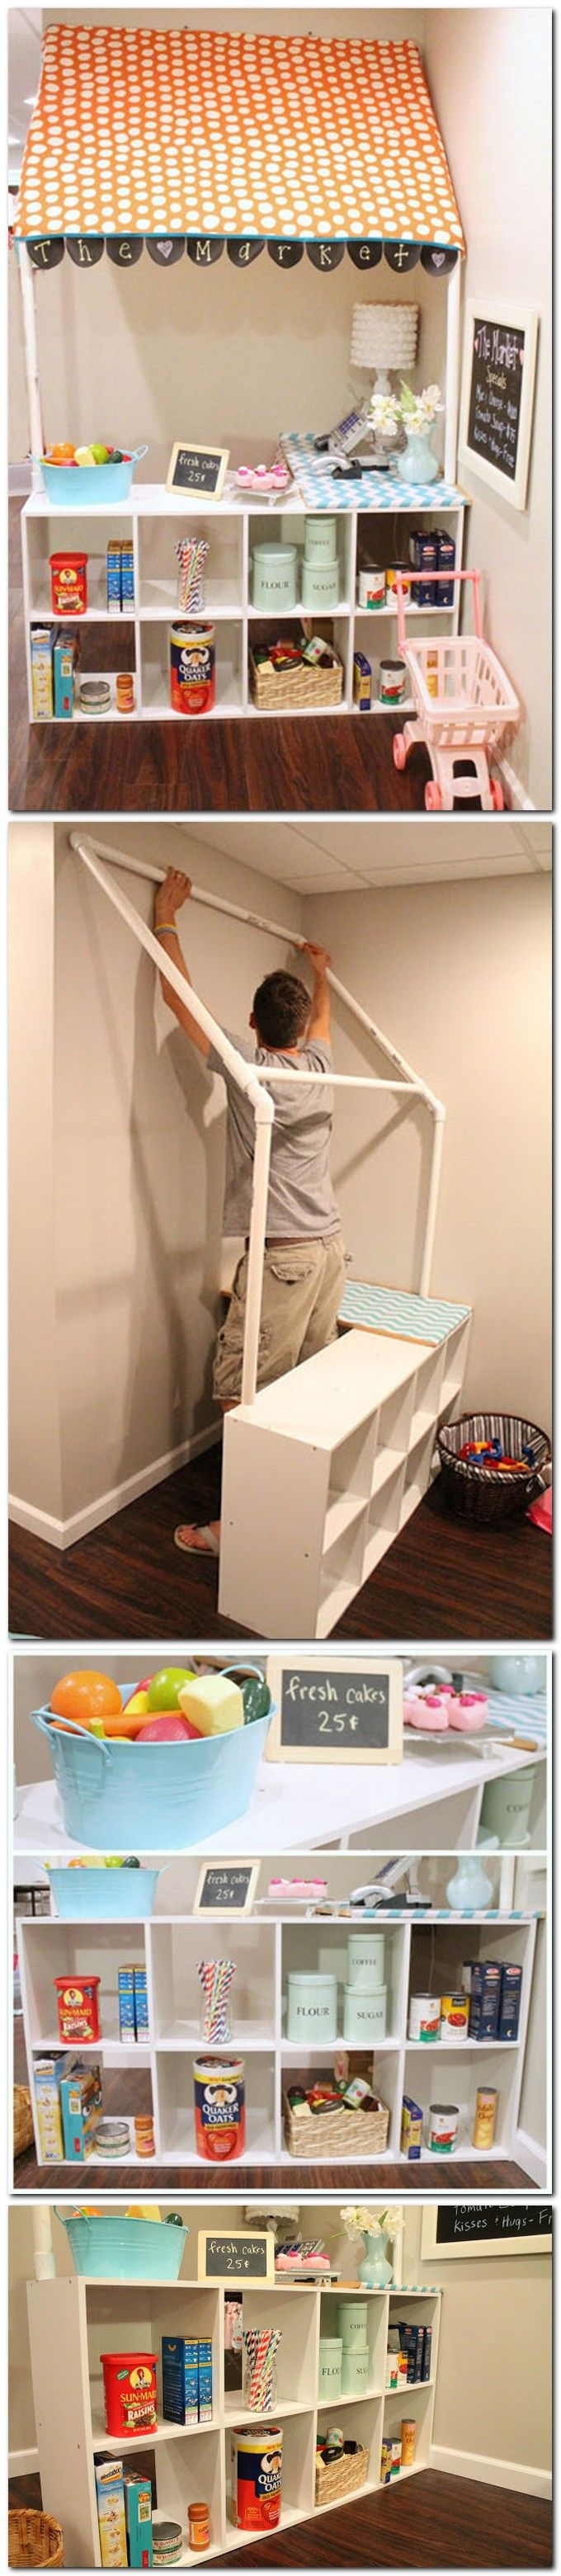 #DIY Children's grocery store or a little playhouse! Cute!